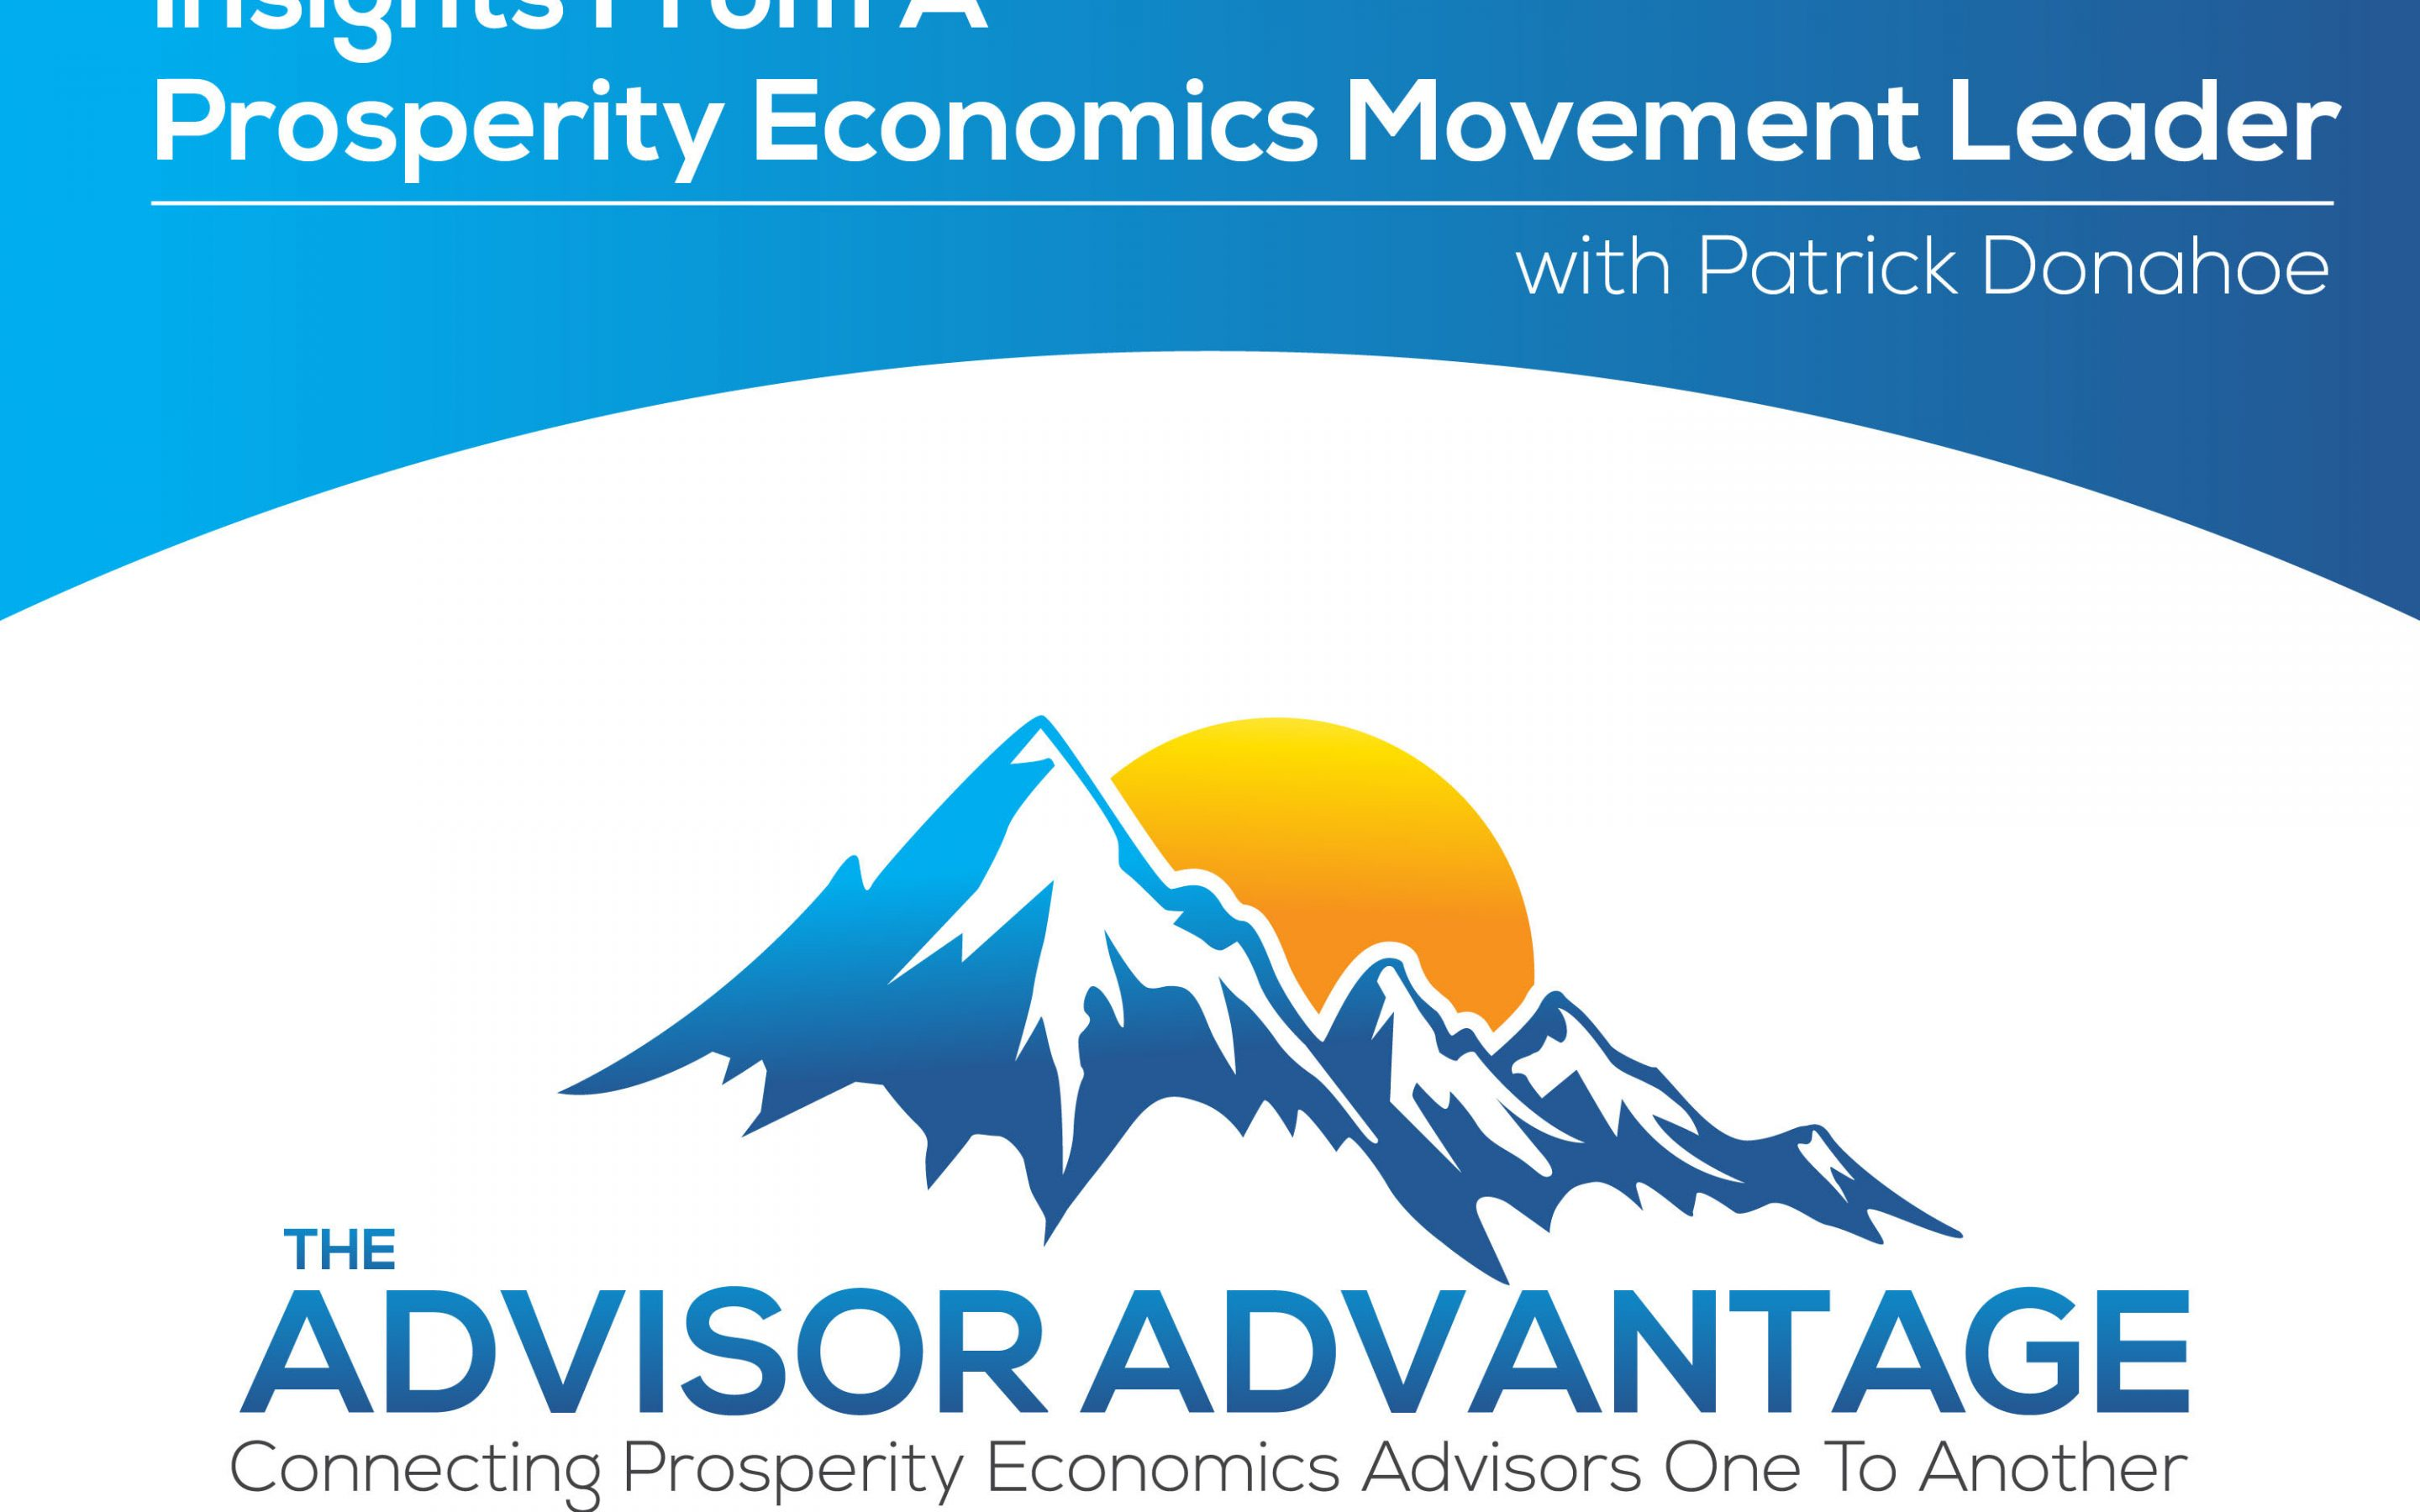 Insights From A Prosperity Economics Movement Leader with Patrick Donahoe – Episode 121